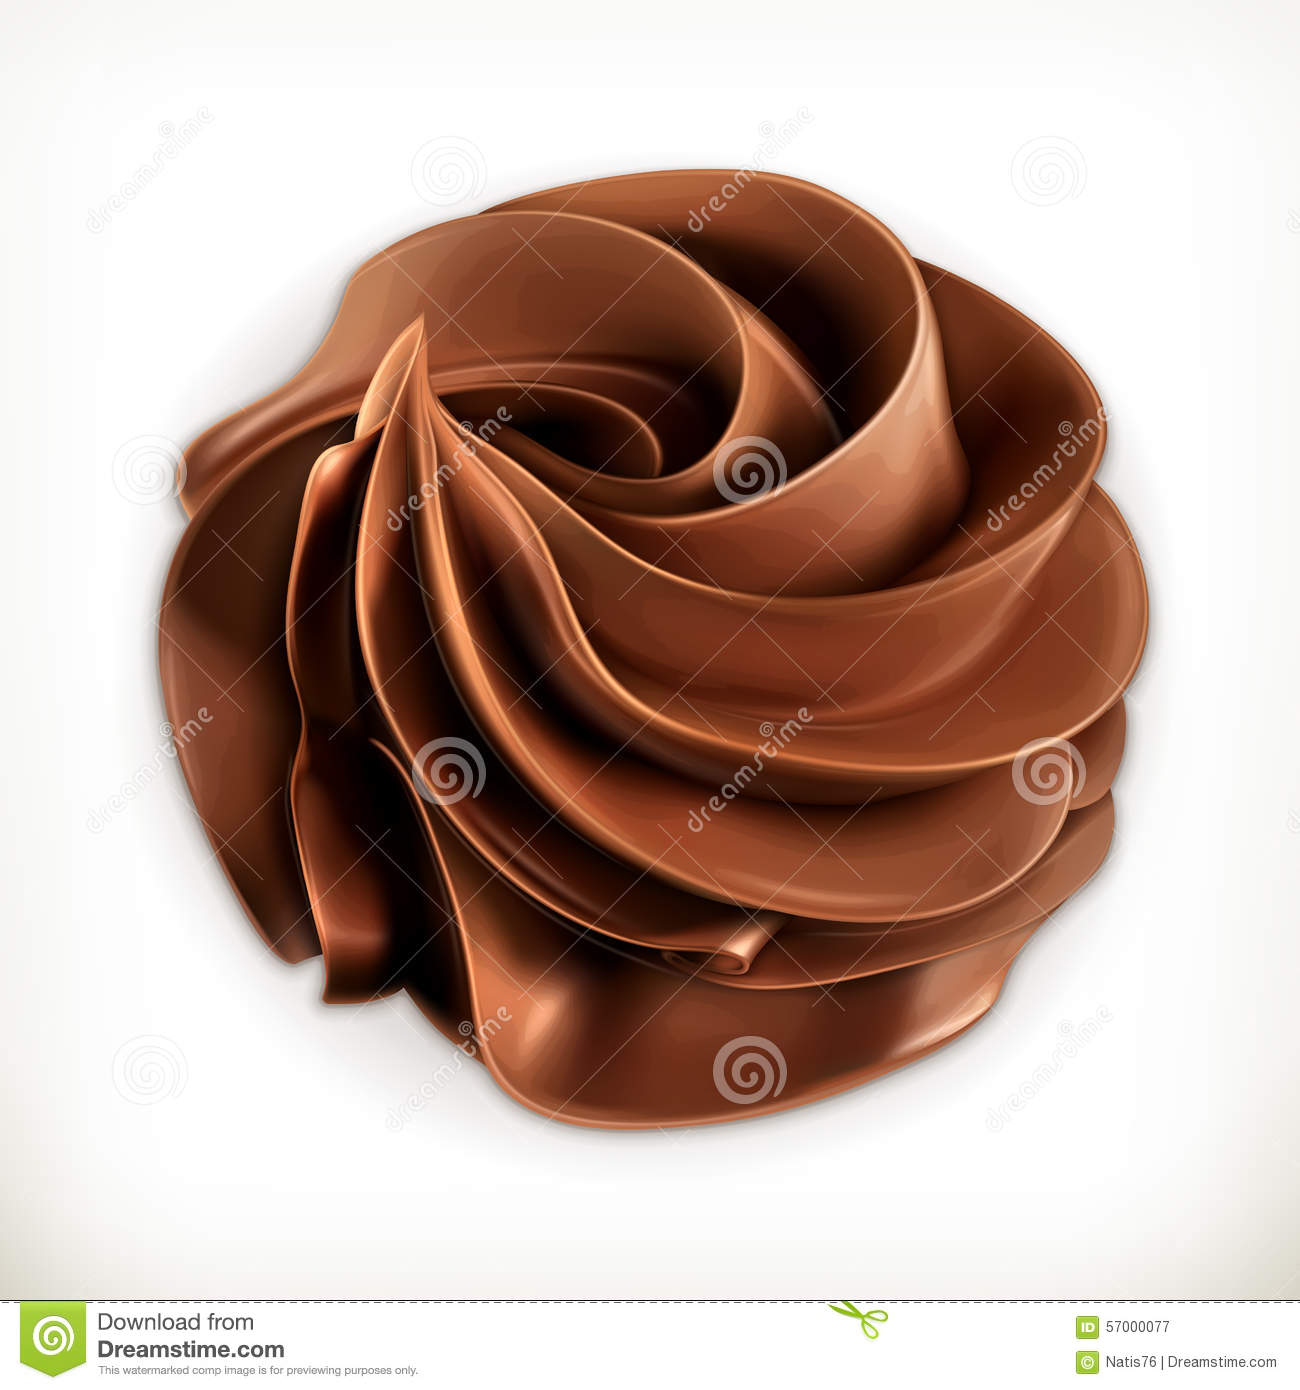 Chocolate Whipped Cream, Vector Icon Stock Vector - Image: 57000077